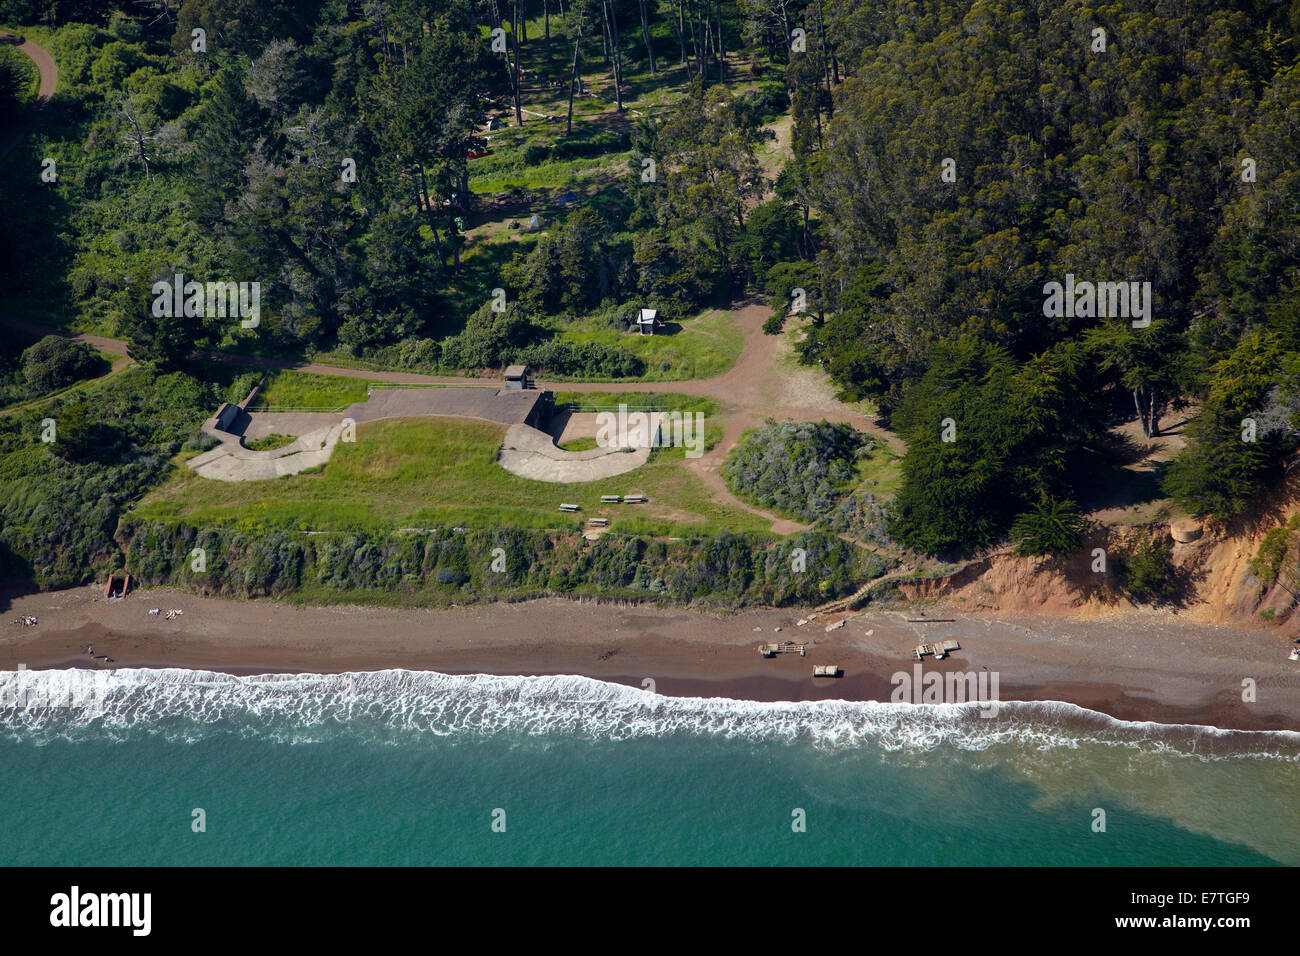 Old defence batteries by Kirby Cove Camp, Marin Headlands, San Francisco, California, USA - aerial - Stock Image